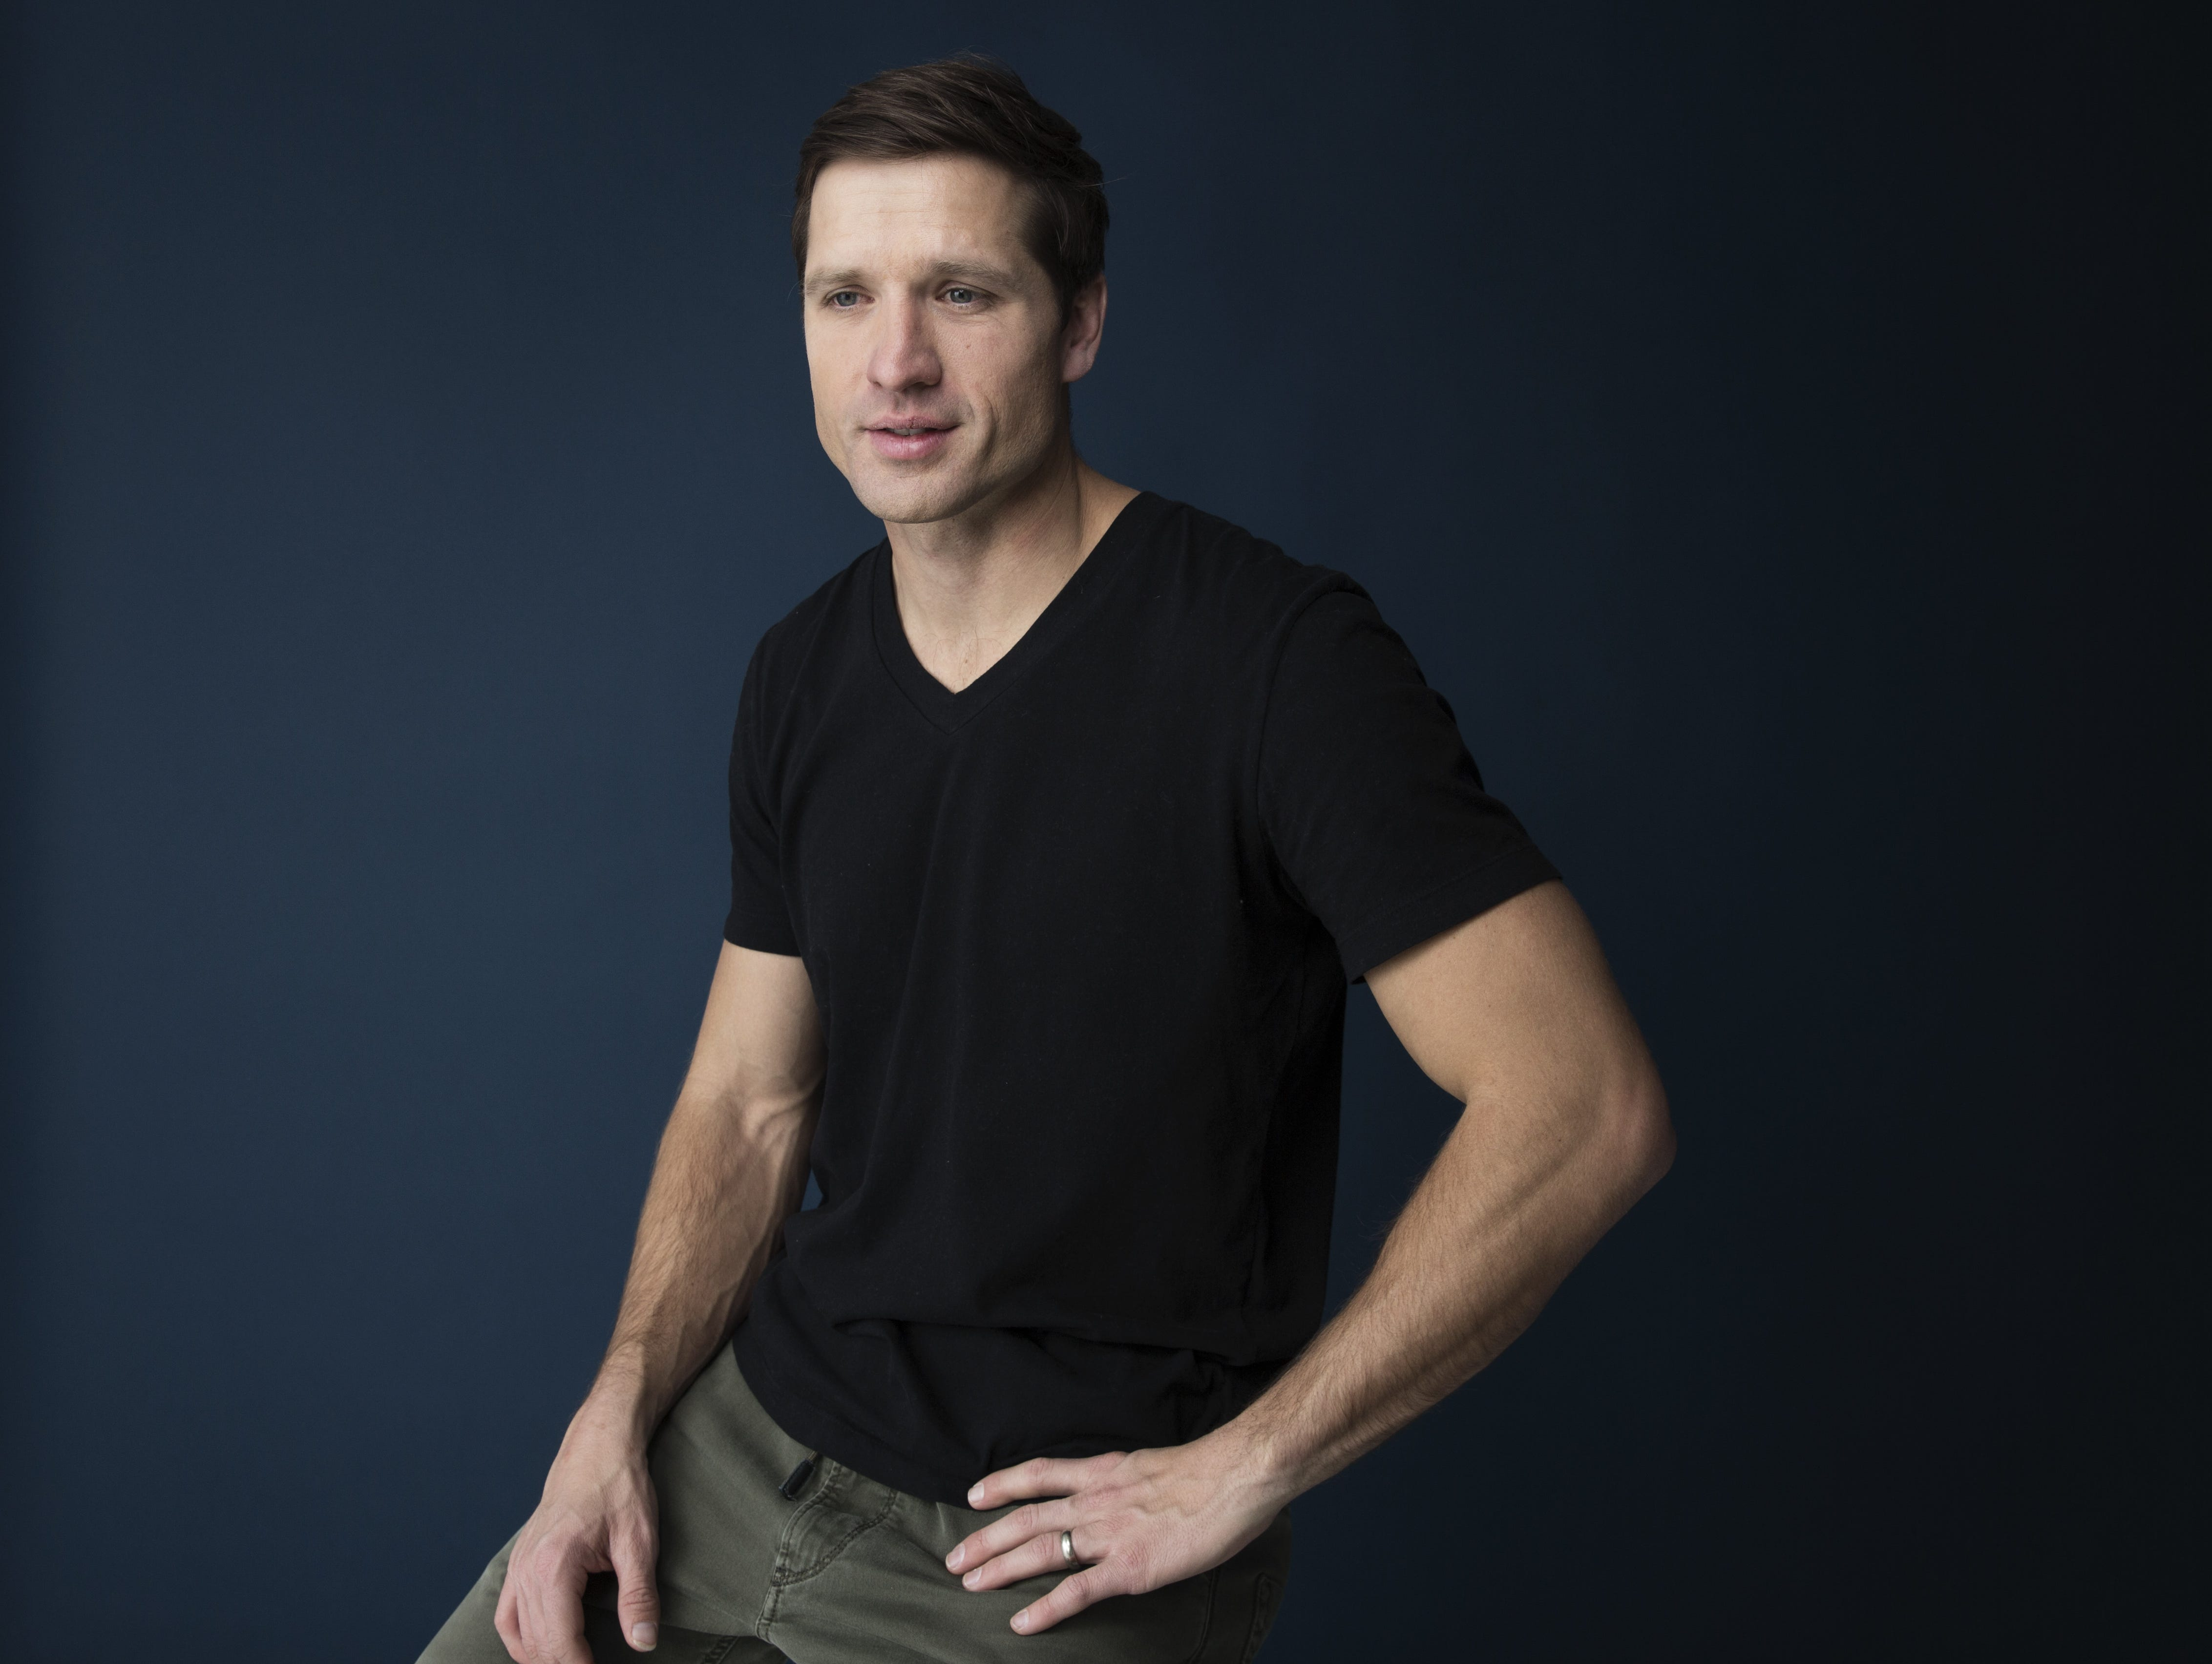 Walker Hayes is scheduled to play the Chevy Riverfront Stage at CMA Fest 2019.